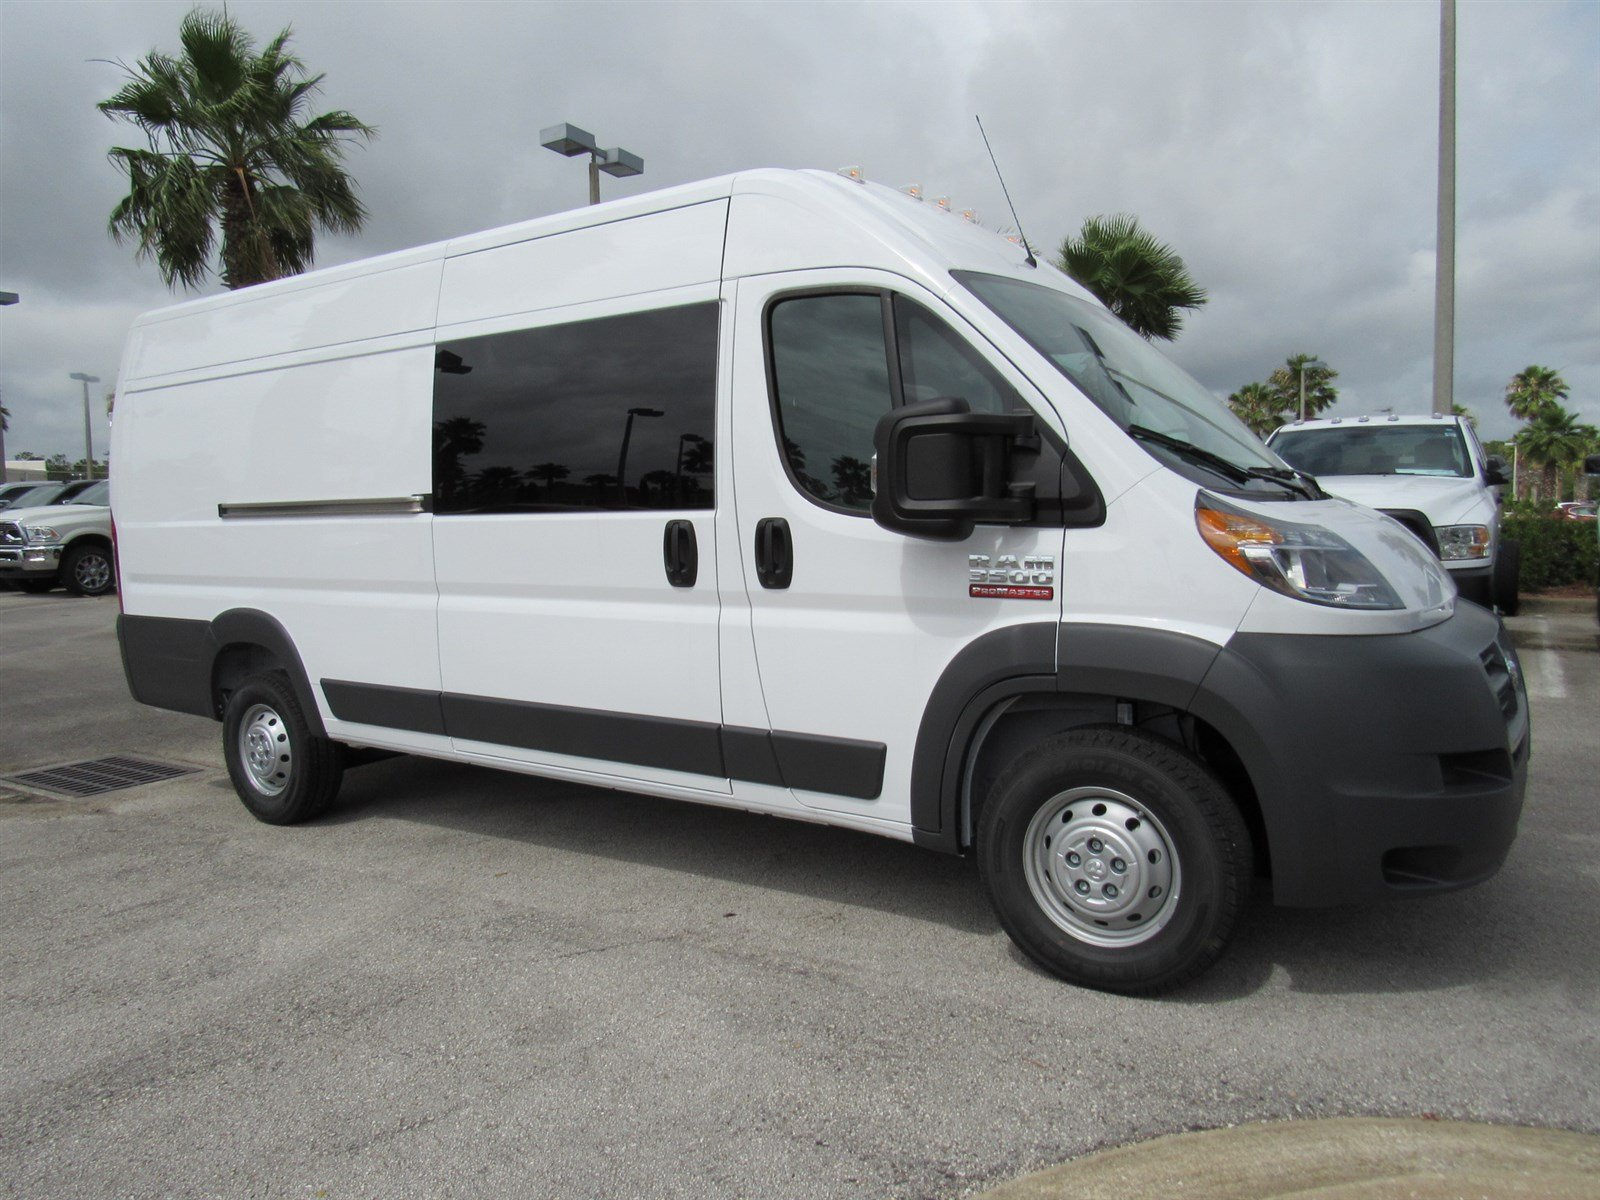 new 2017 ram promaster cargo van extended cargo van in daytona beach r17216 daytona dodge. Black Bedroom Furniture Sets. Home Design Ideas